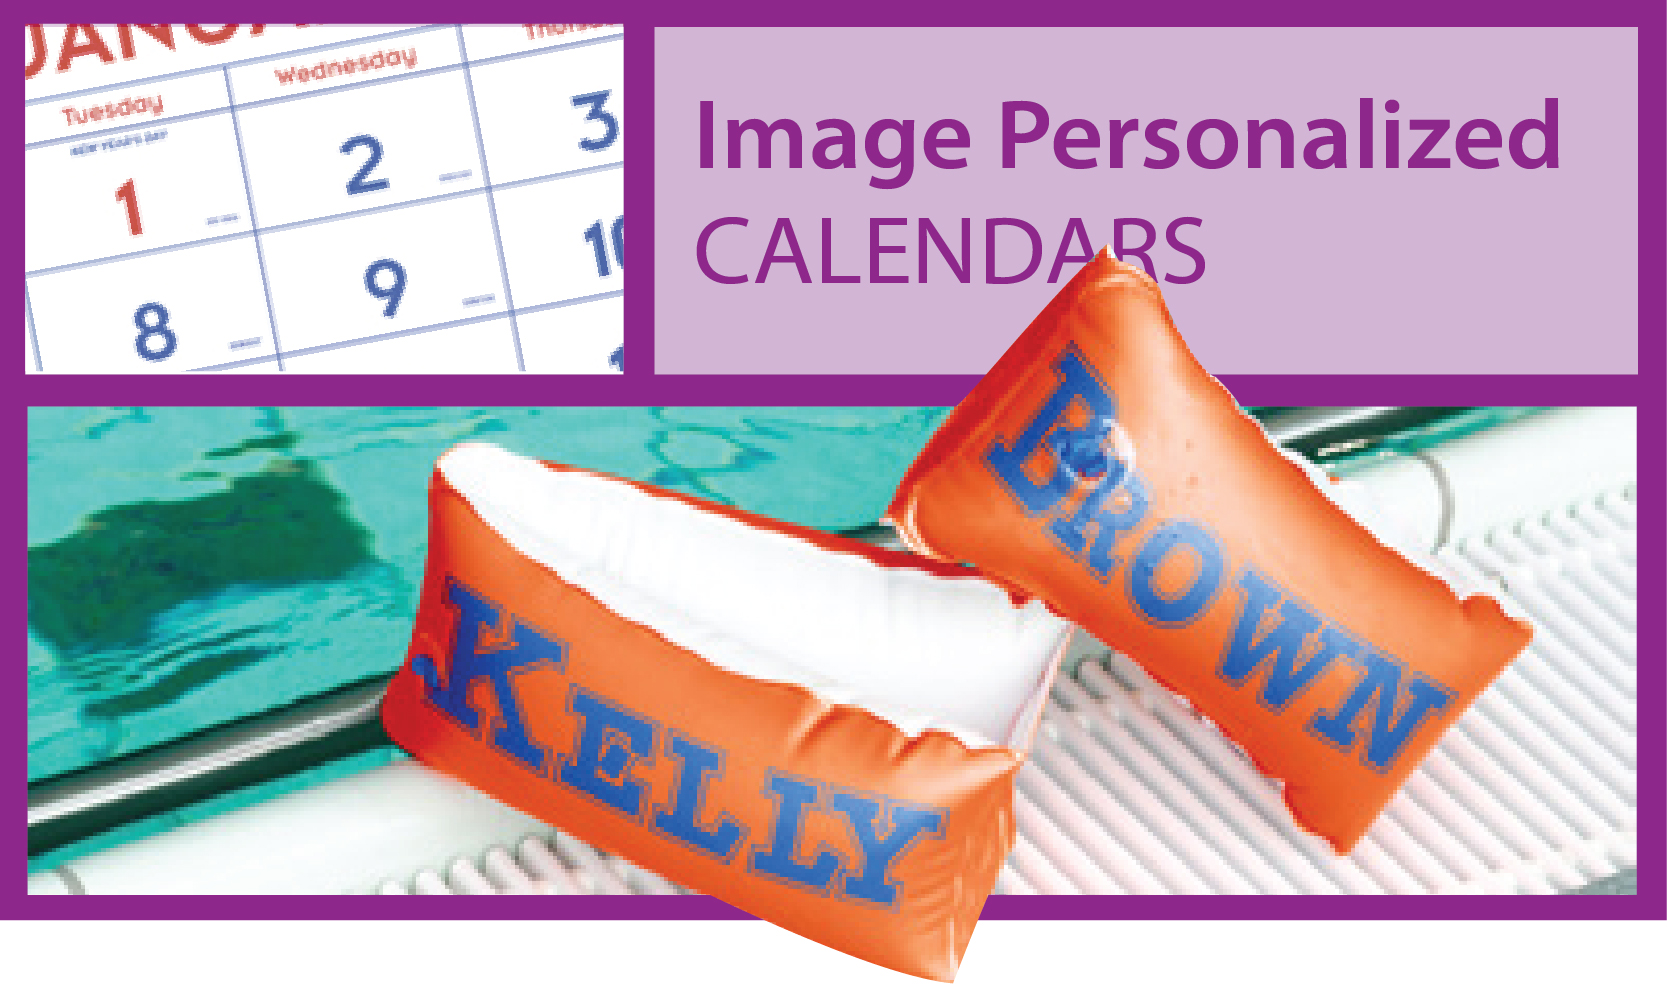 Promotional Image Personalized Calendars